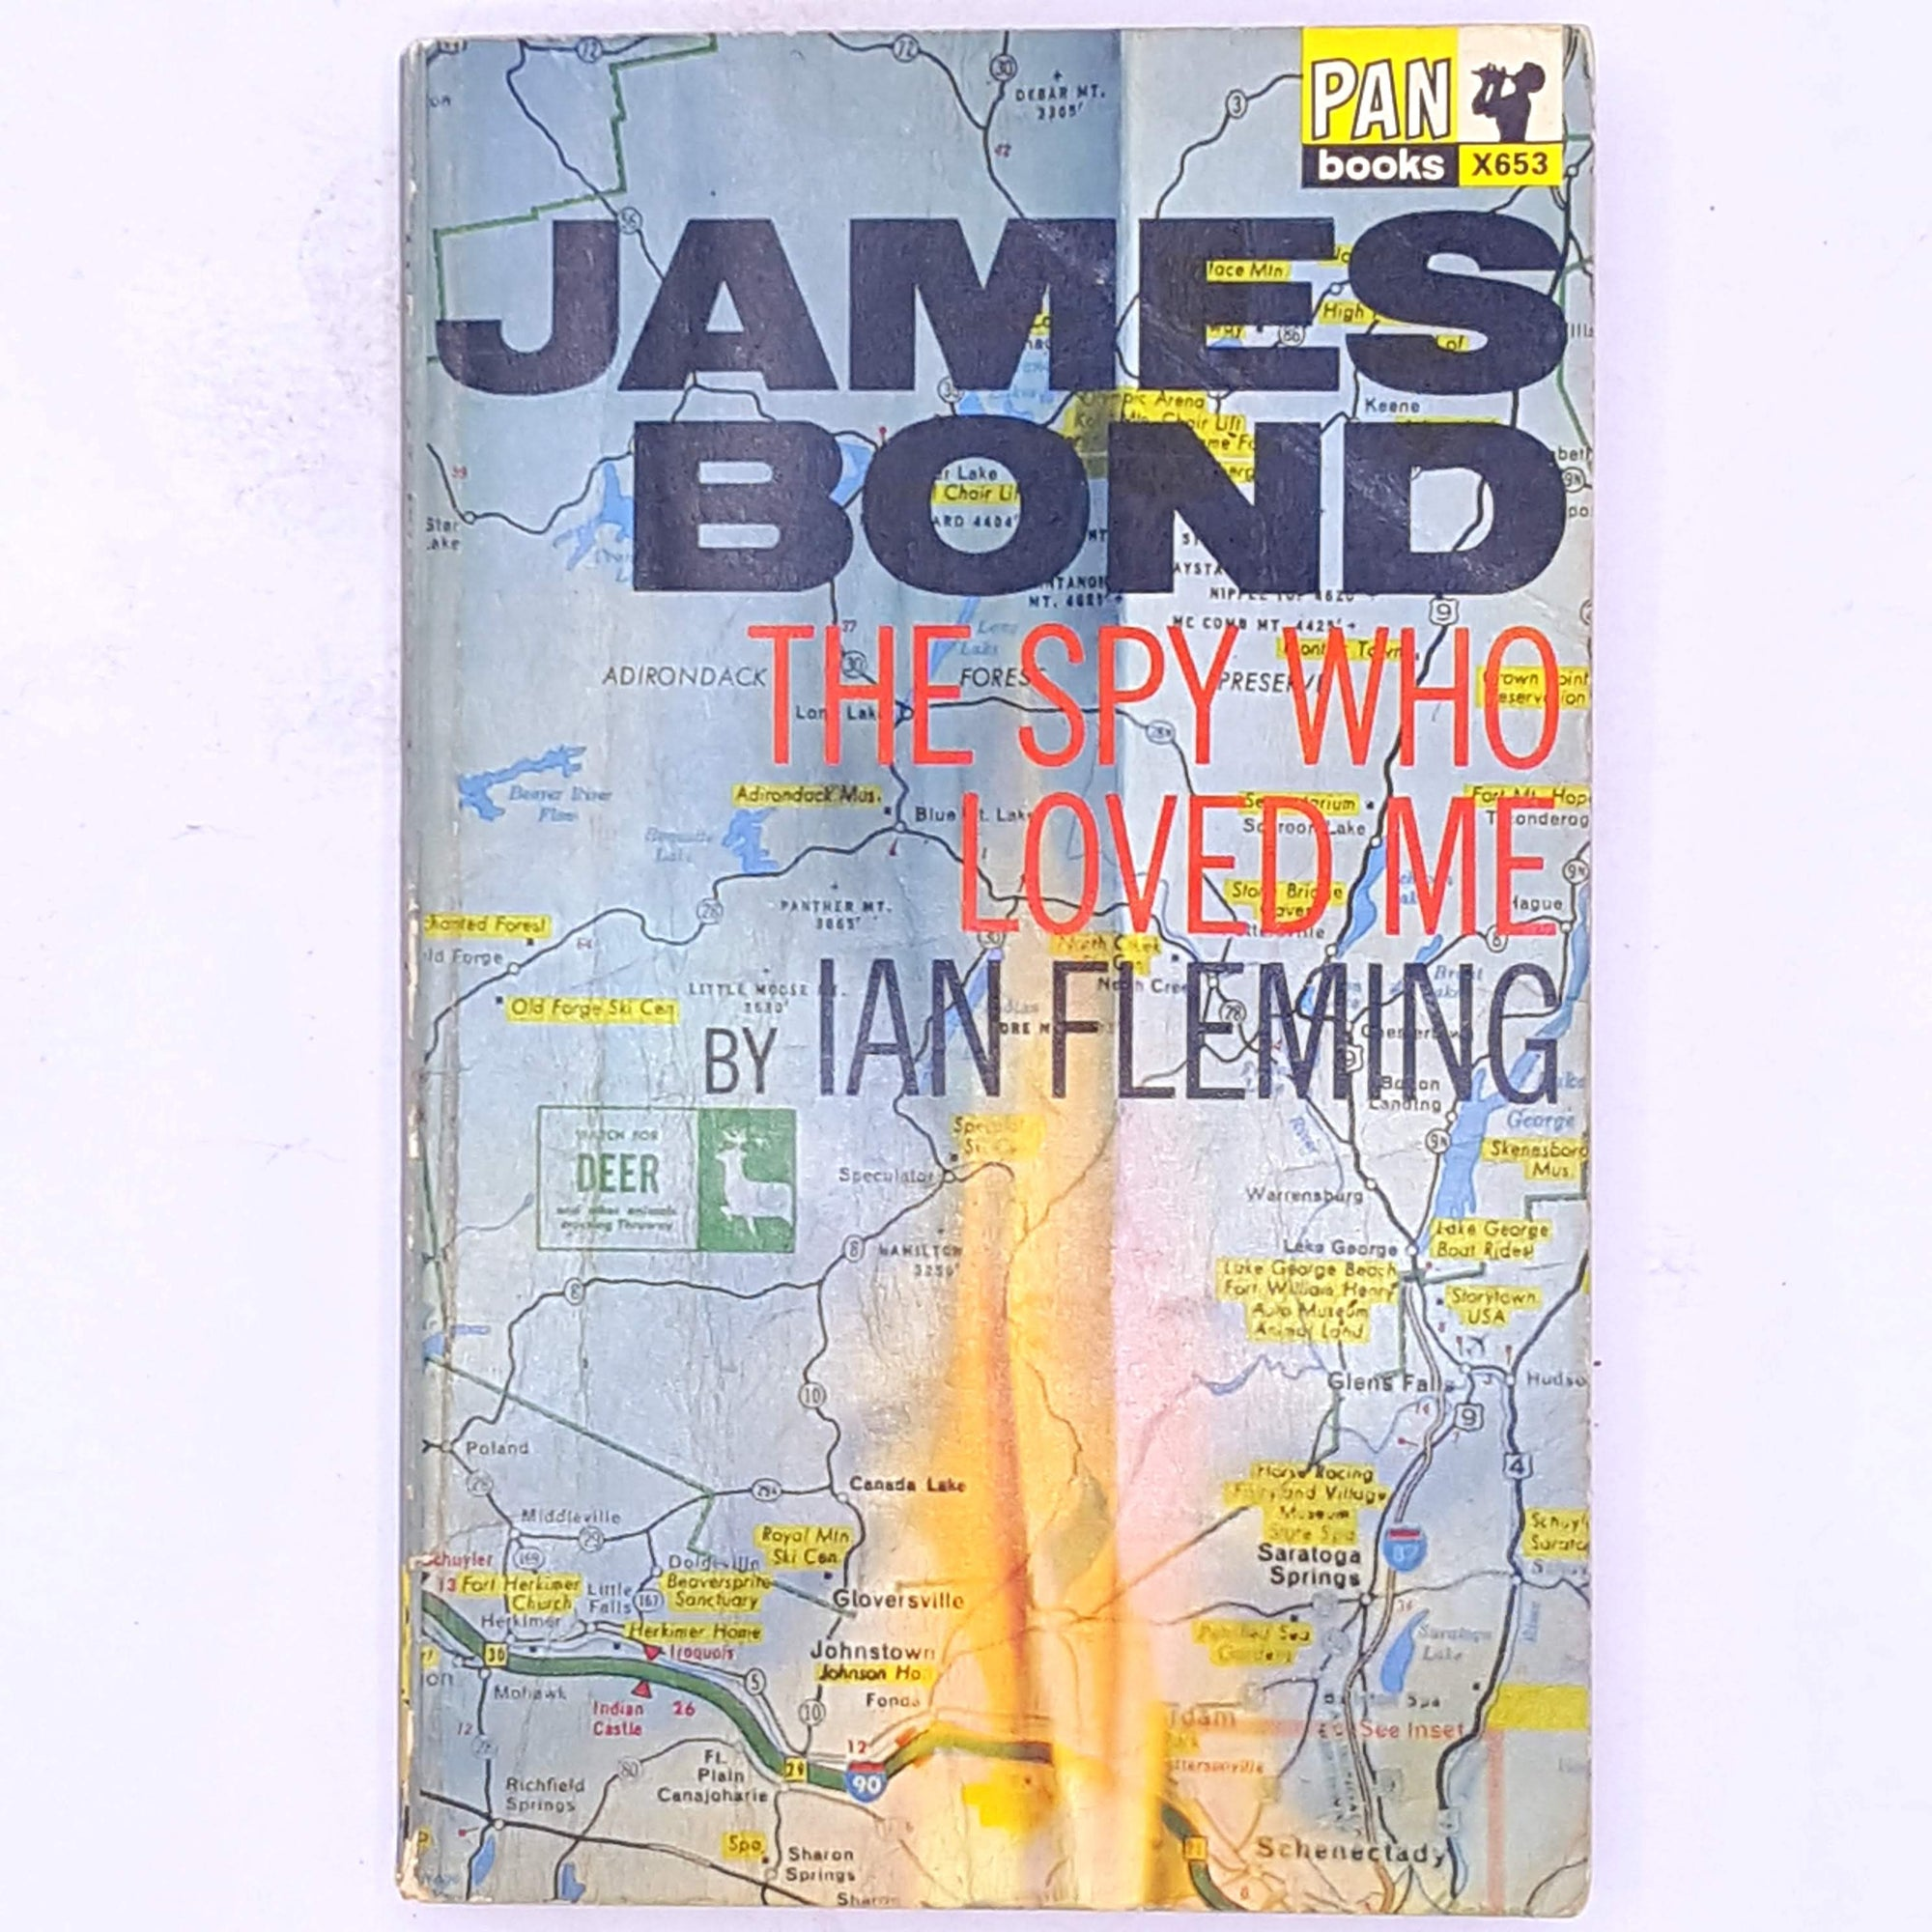 country-house-library-james-bond-decorative-vintage-007-books-classic-spy-crime-mystery-thriller-secret-service-ian-fleming-thrift-the-spy-who-loved-me-vivienne-michel-patterned-antique-British-secret-agent-old-